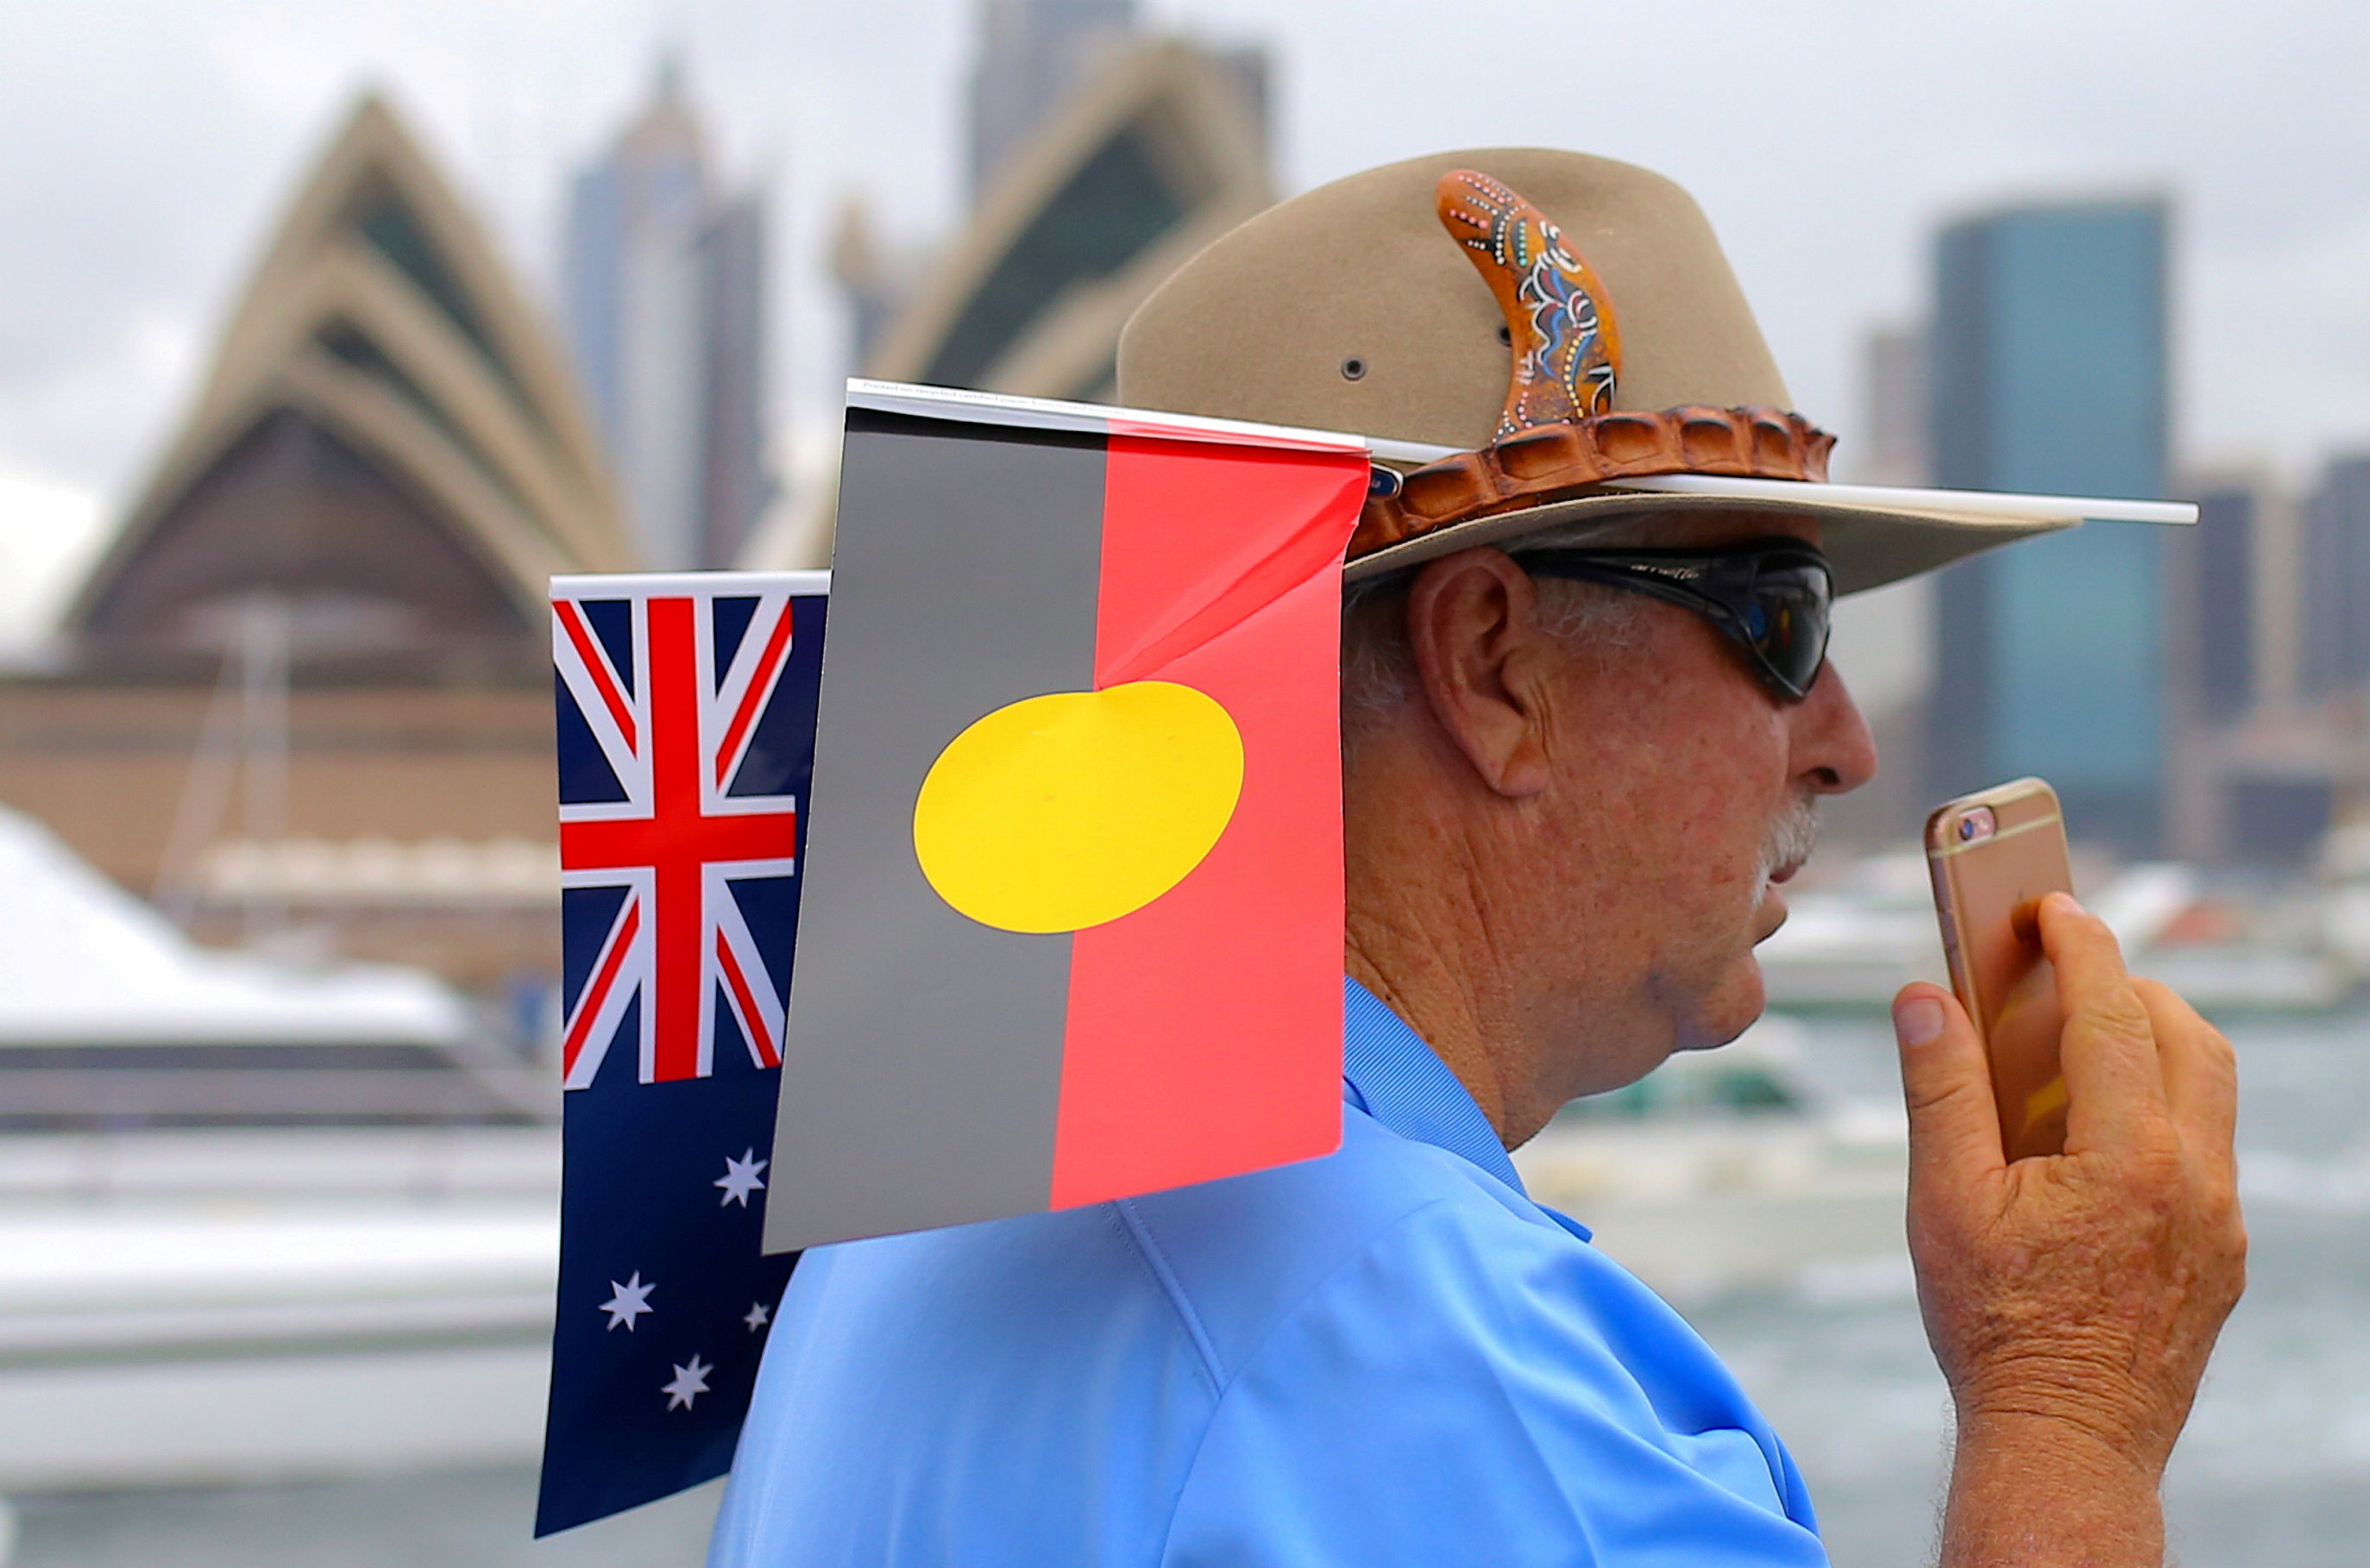 A passenger aboard a ferry wears an Australian Aboriginal flag and national flag in his hat as the talks on his phone during celebrations for Australia Day, which marks the arrival of Britain's First Fleet in 1788, on Sydney Harbour in Australia, January 26, 2018.   REUTERS/Steven Saphore - RC1ABF3A1480